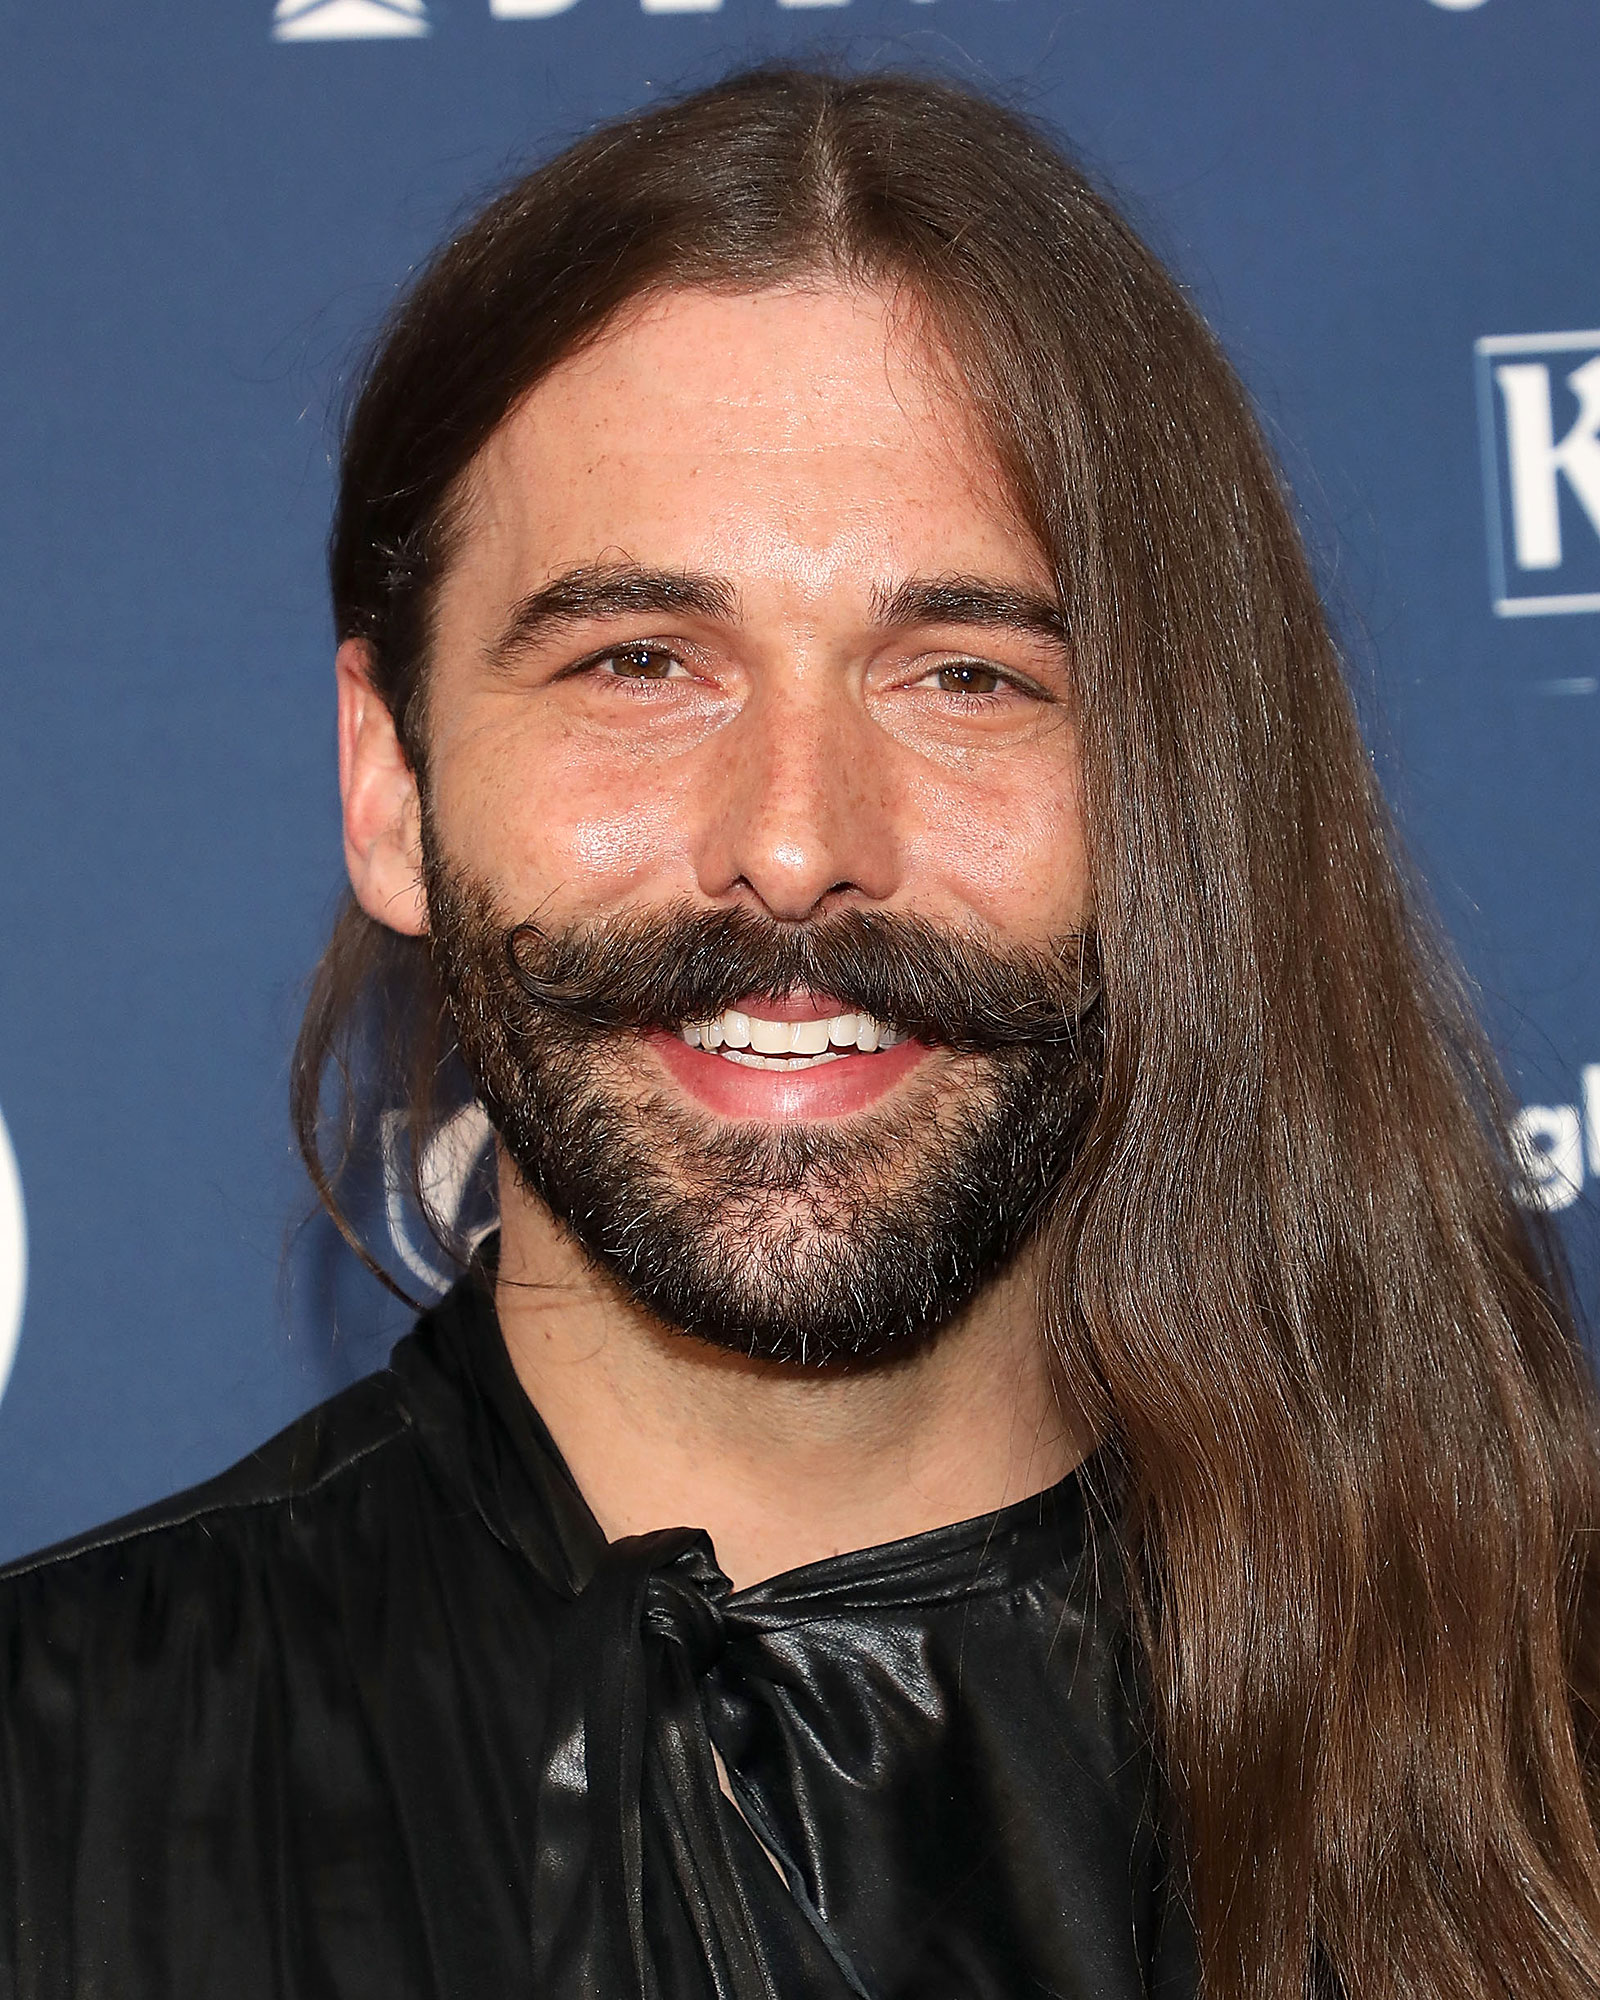 Jonathan Van Ness - Jonathan Van Ness attends the 30th Annual GLAAD Media Awards at New York Hilton Midtown on May 4, 2019 in New York City.